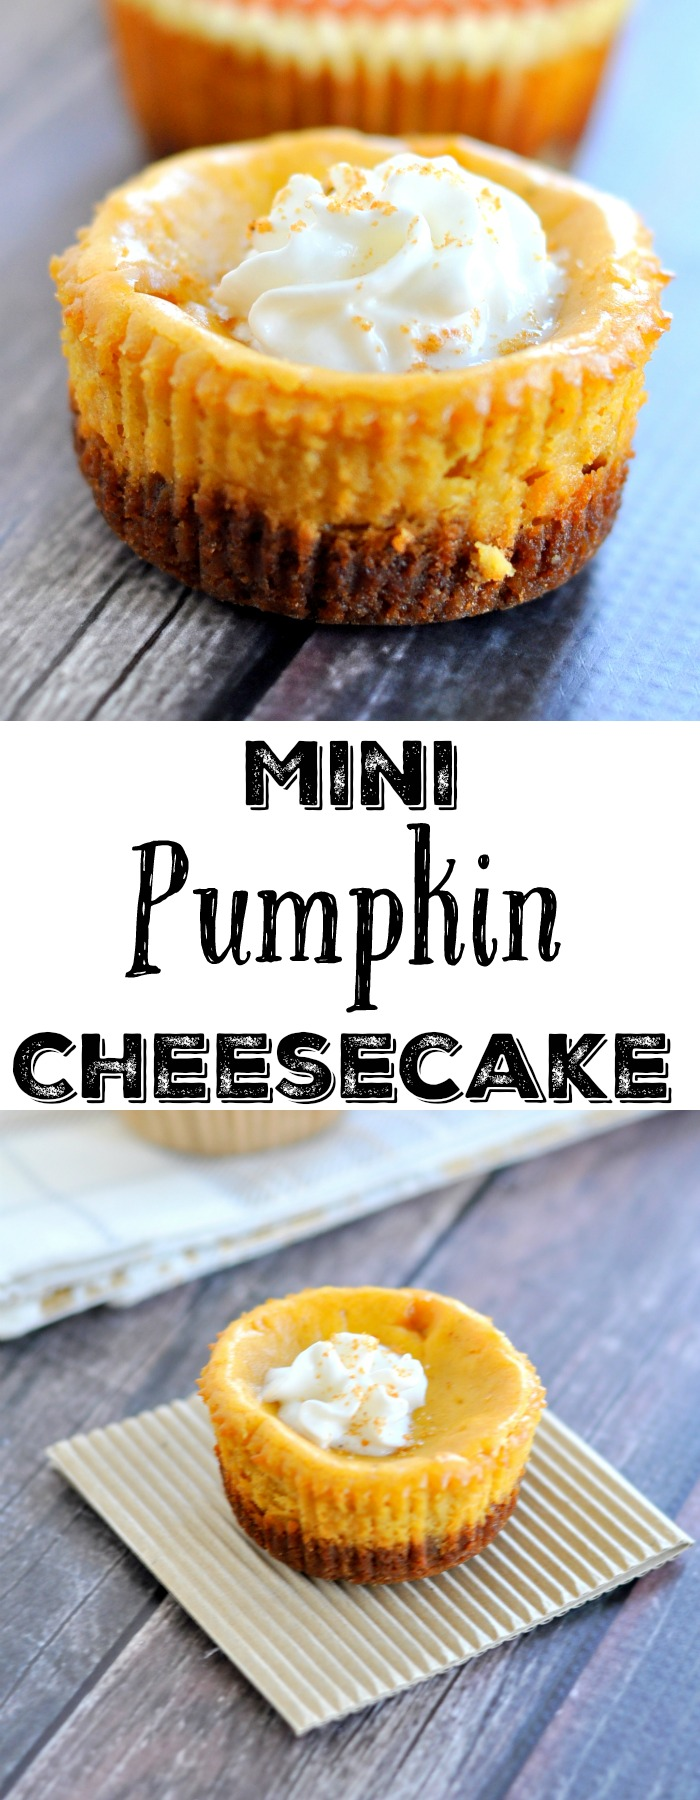 These mini pumpkin cheesecakes are the perfect dessert for fall, Thanksgiving or any time!